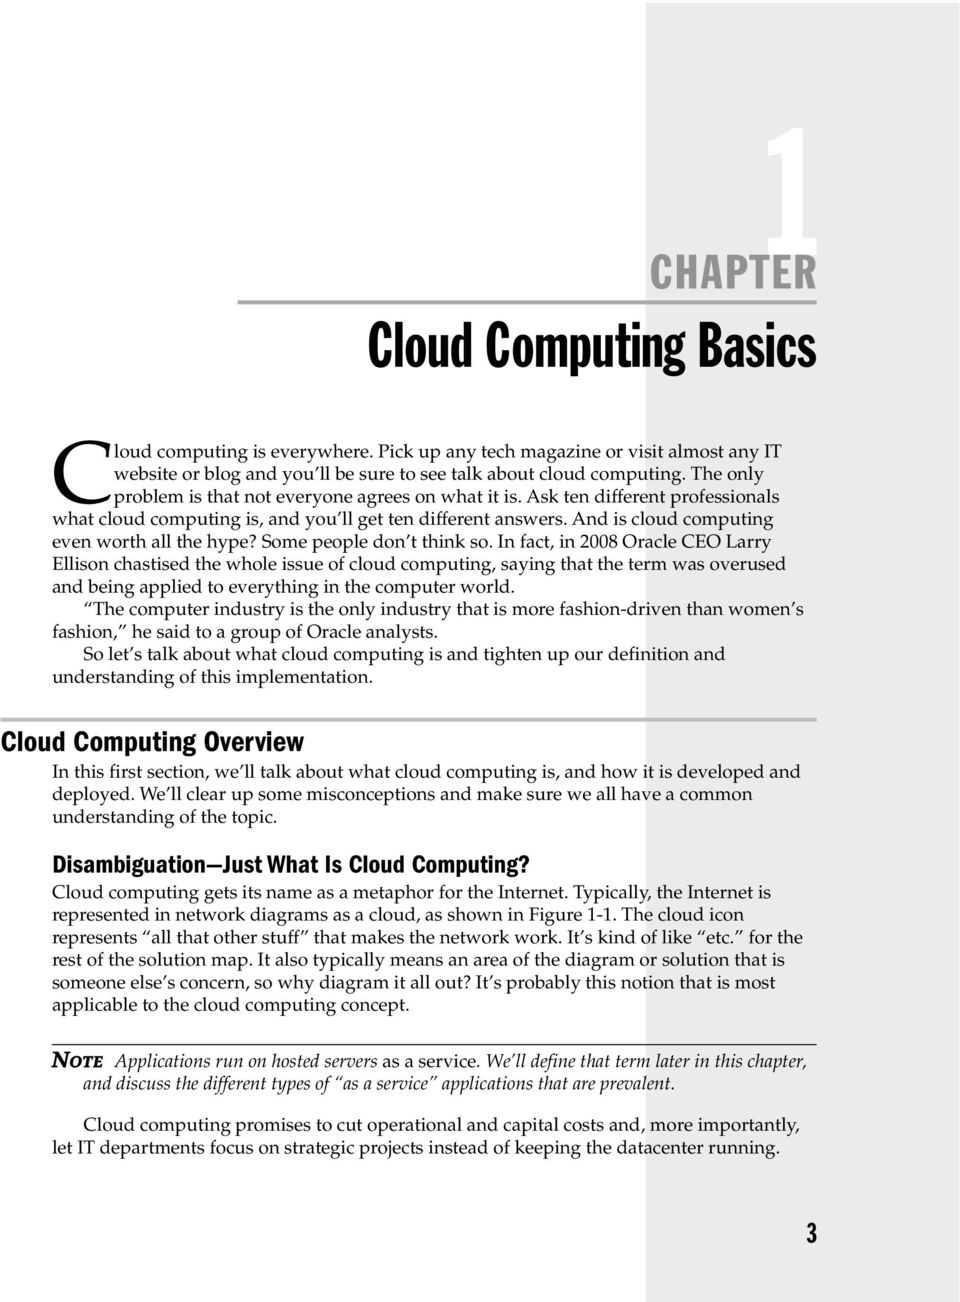 And is cloud computing even worth all the hype? Some people don t think so.